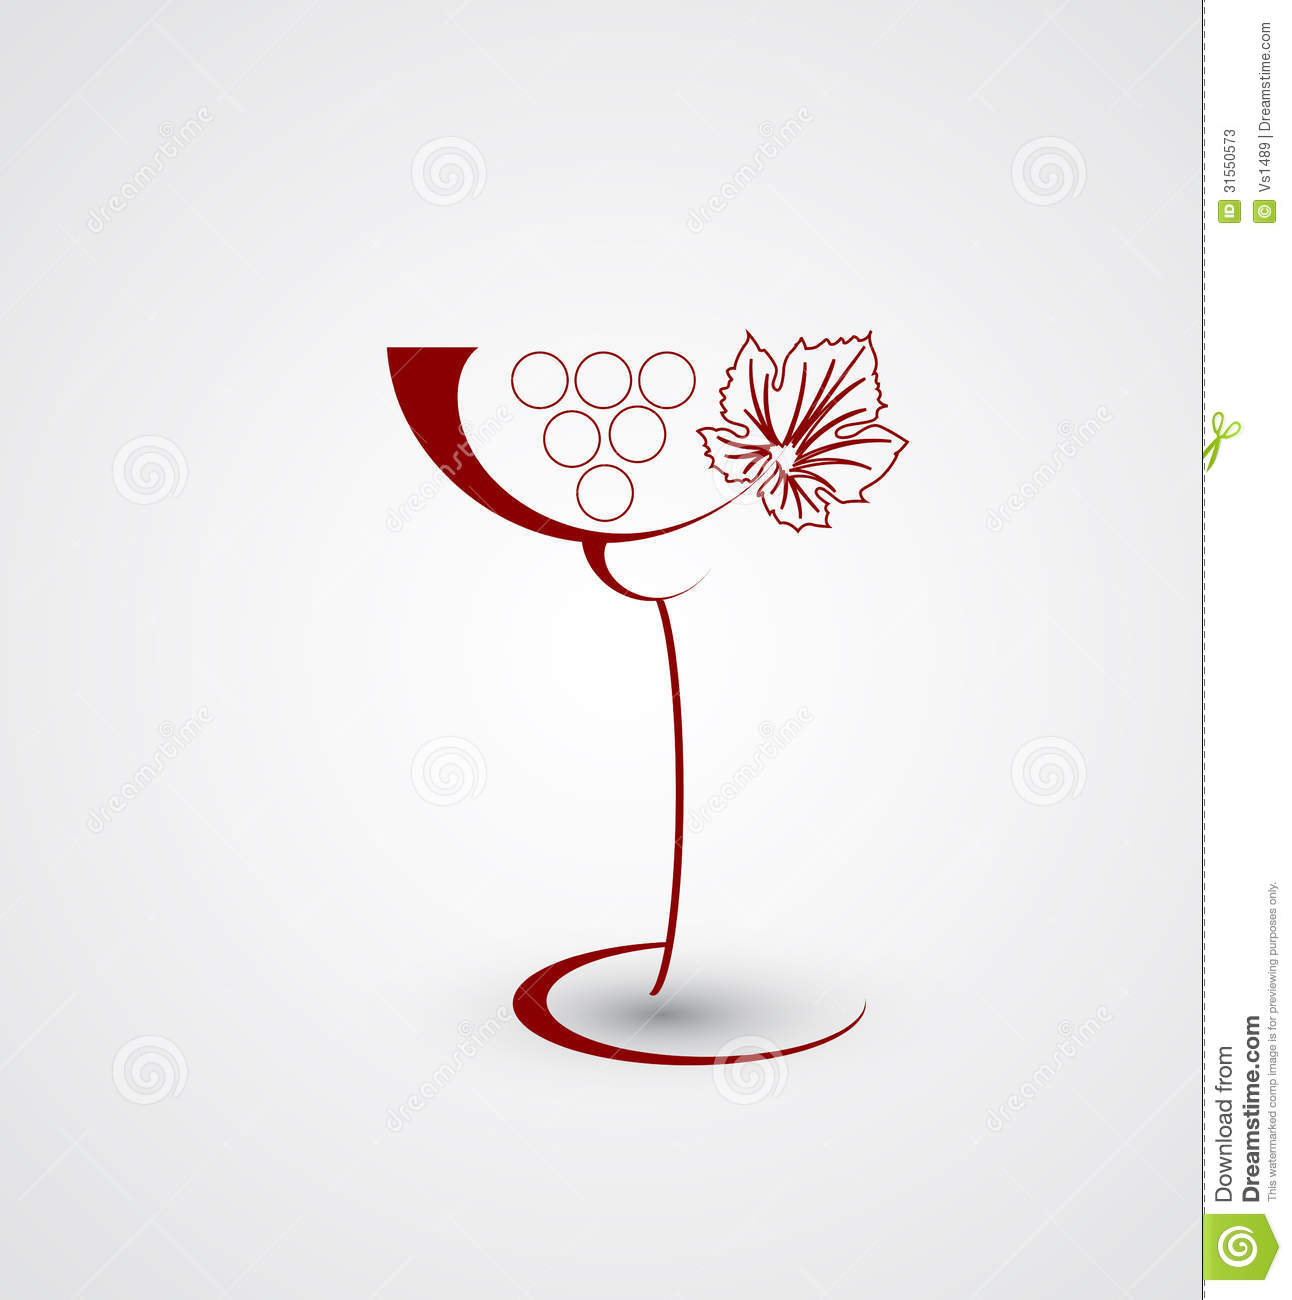 Wine menu card design background stock image image of for Souper simple entre amis